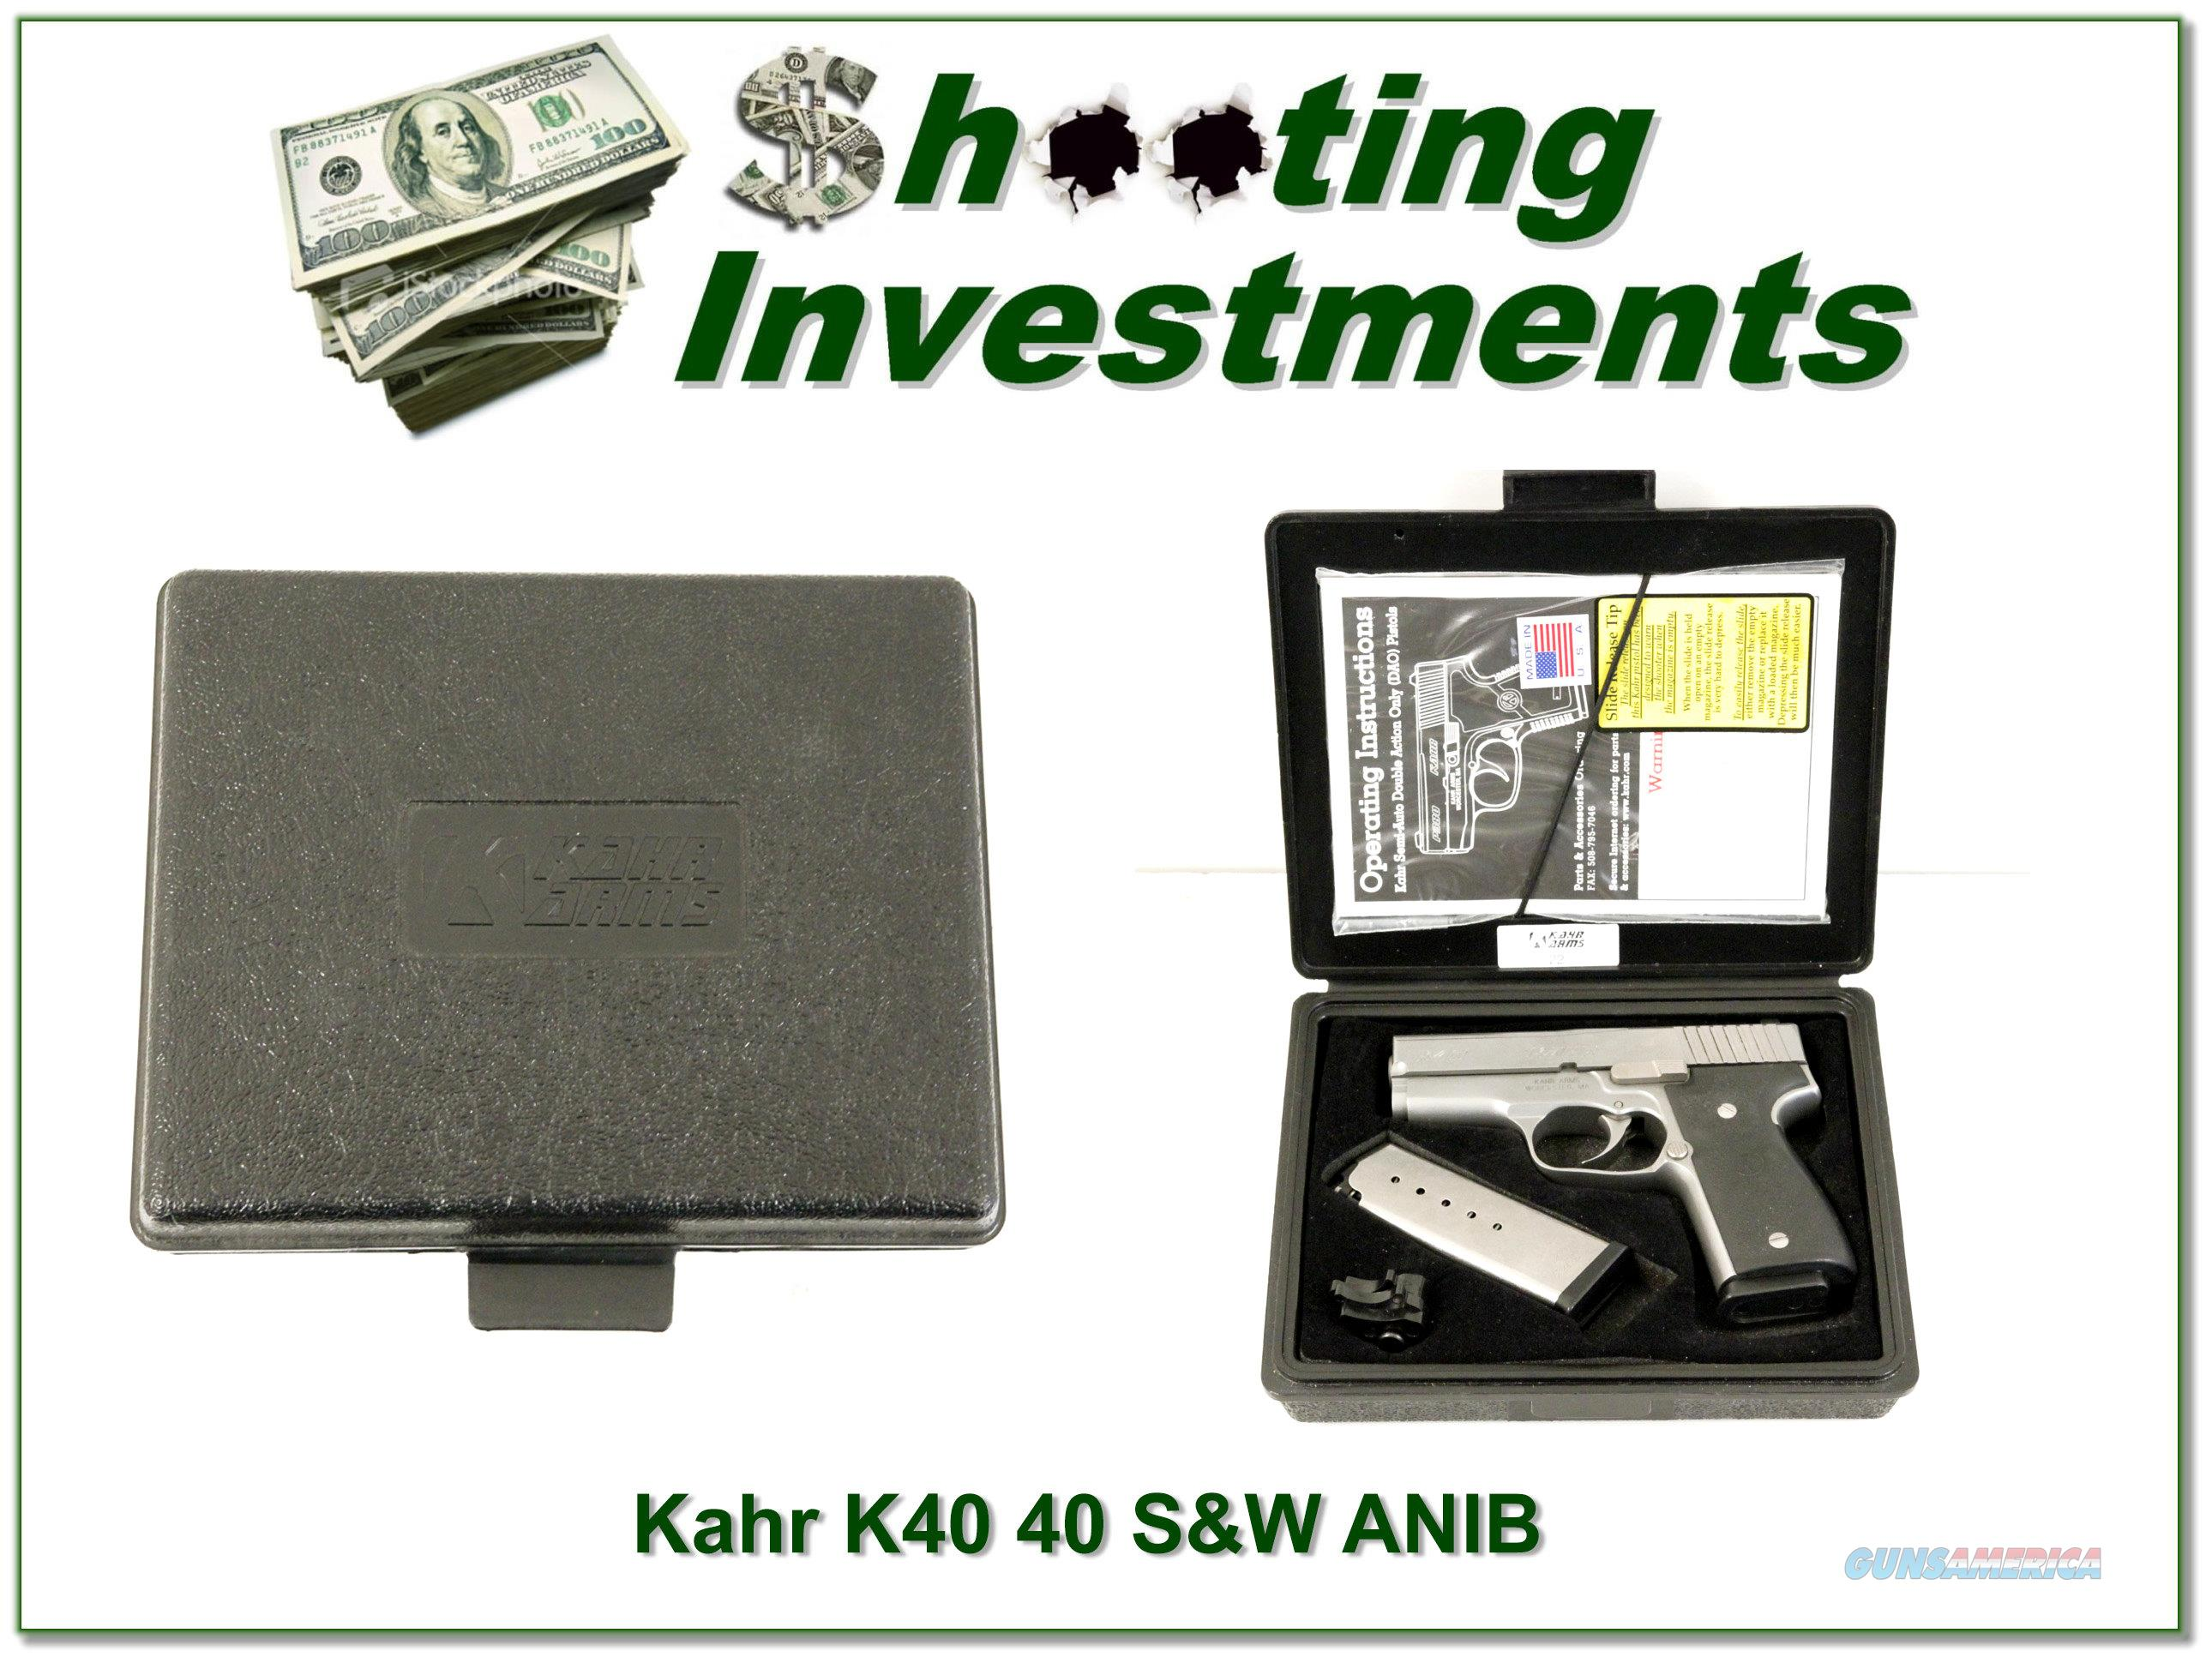 Kahr K40 Stainless as new 40 S&W  Guns > Pistols > Kahr Pistols